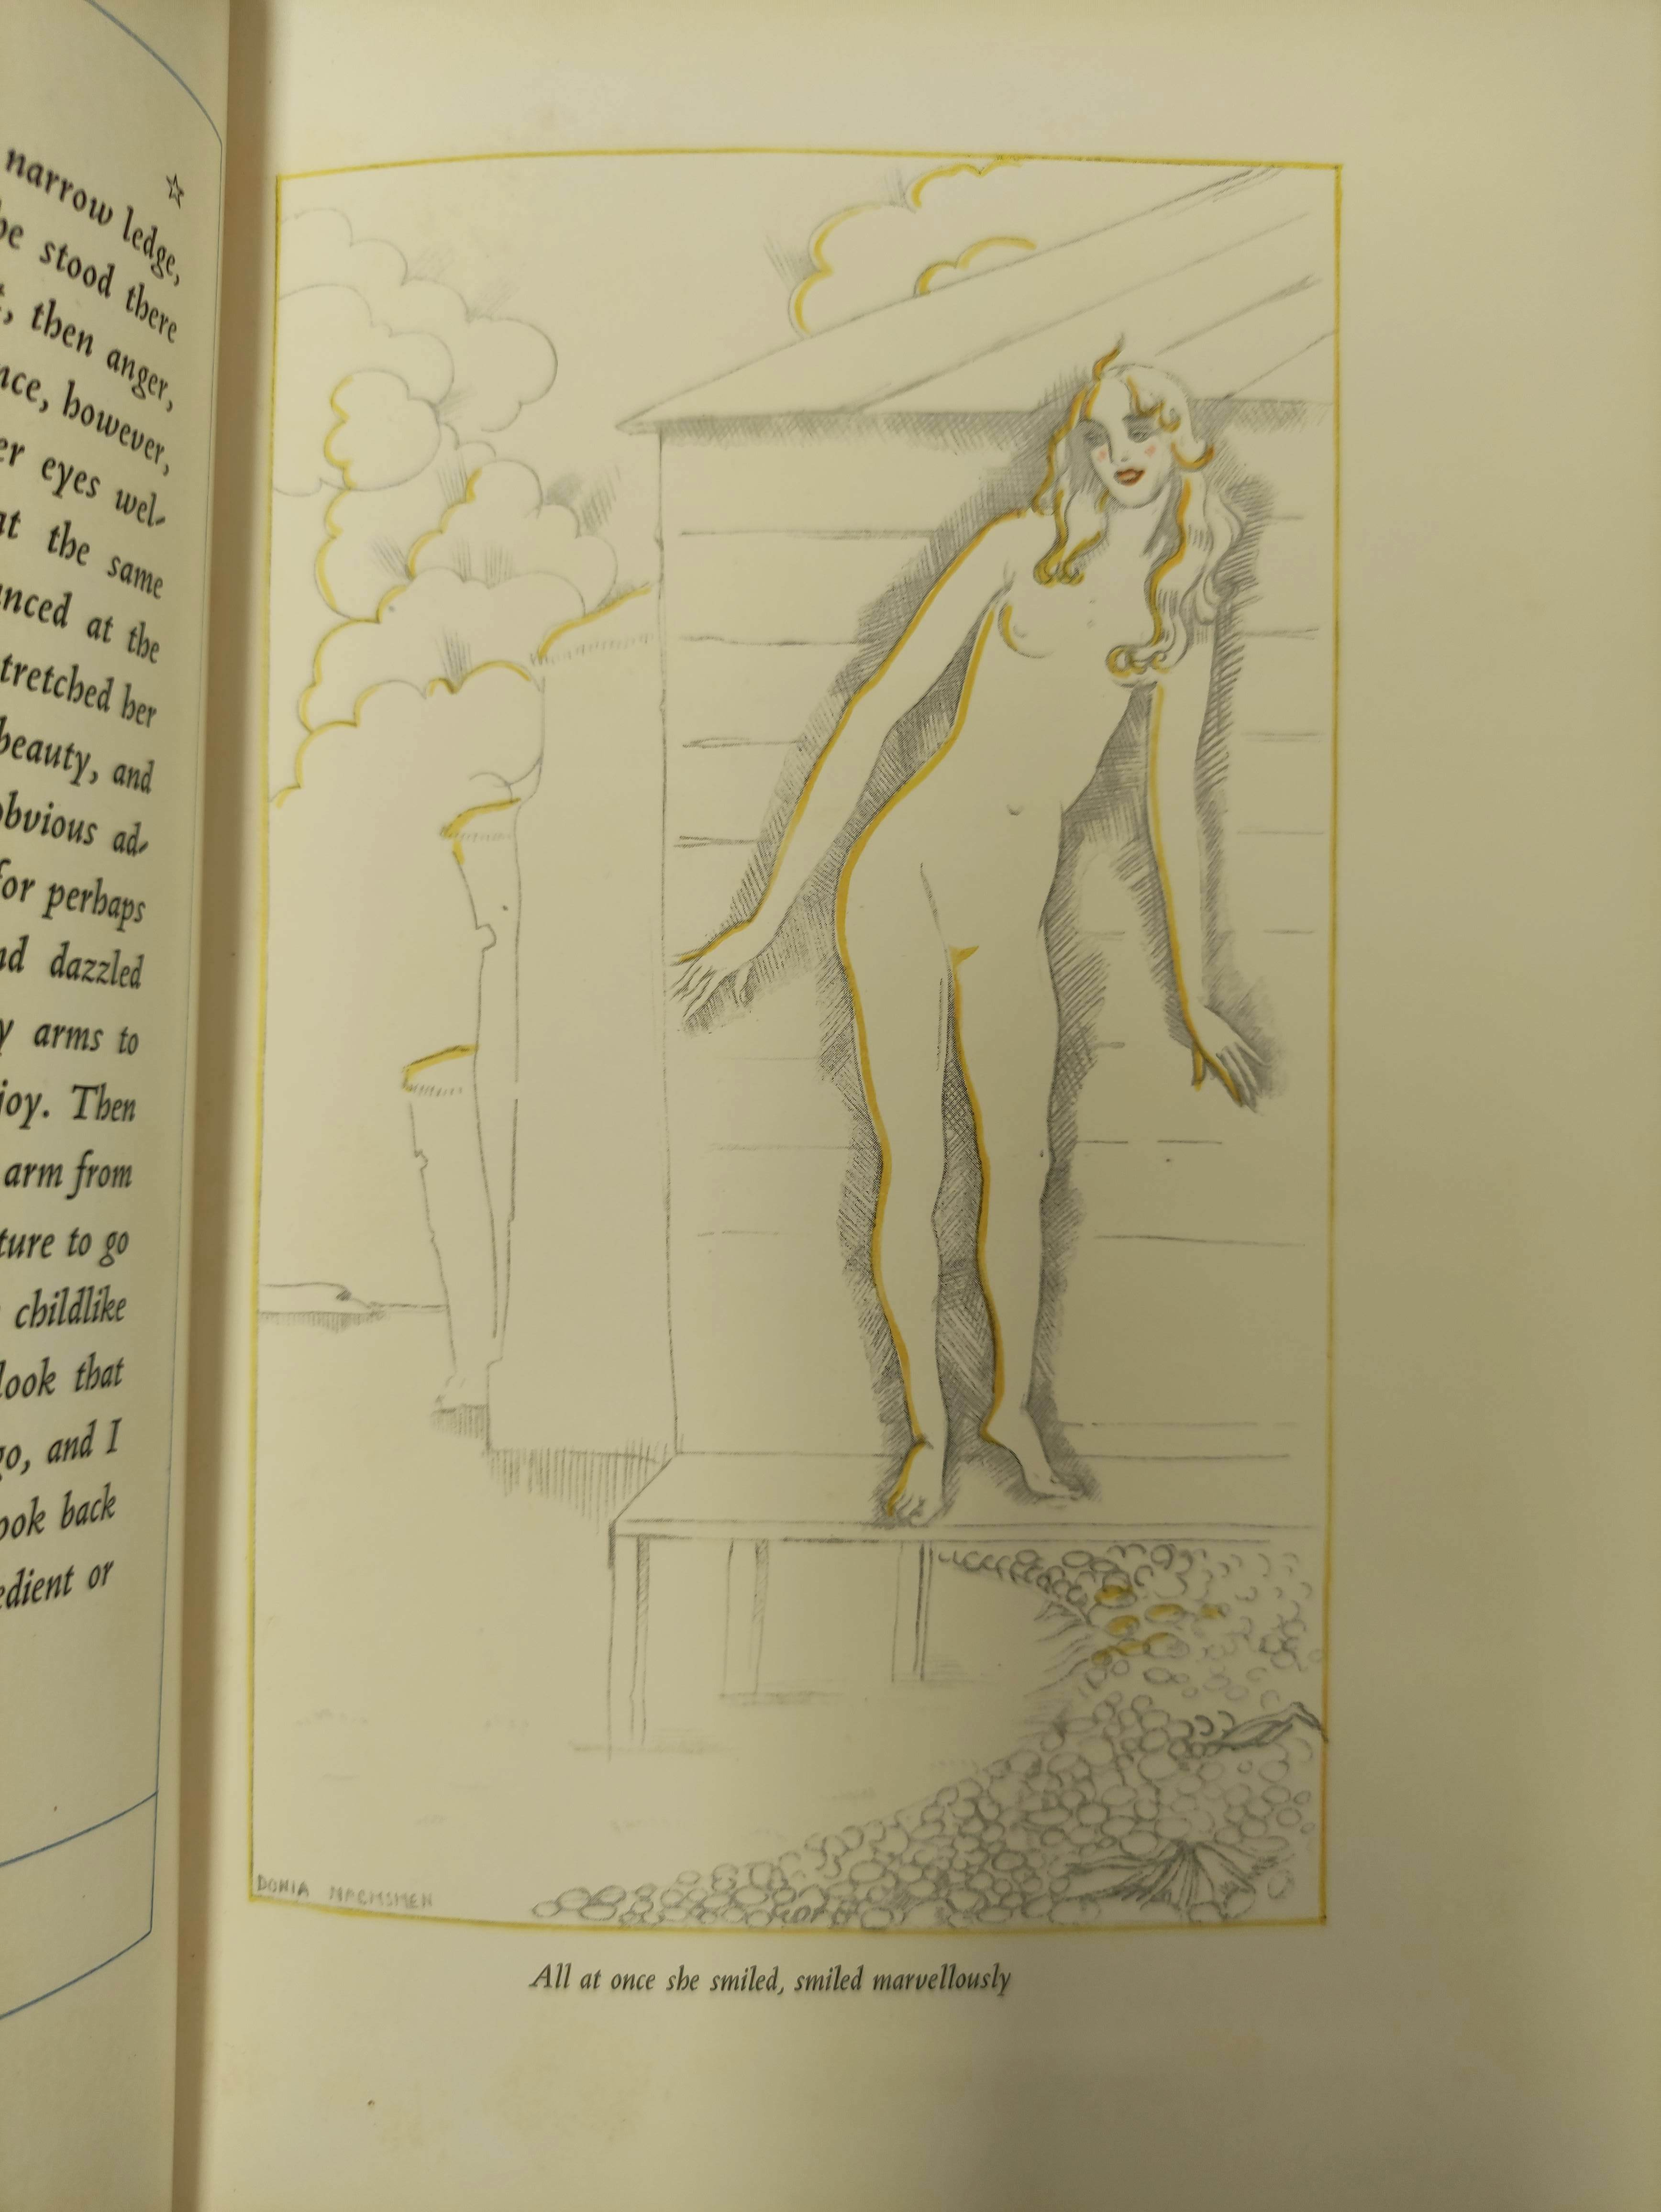 BENVENISTE PIP (Illus).When You Wake Tomorrow by Brian Patten. Ltd. ed. 21/125. Signed by author & - Image 12 of 14